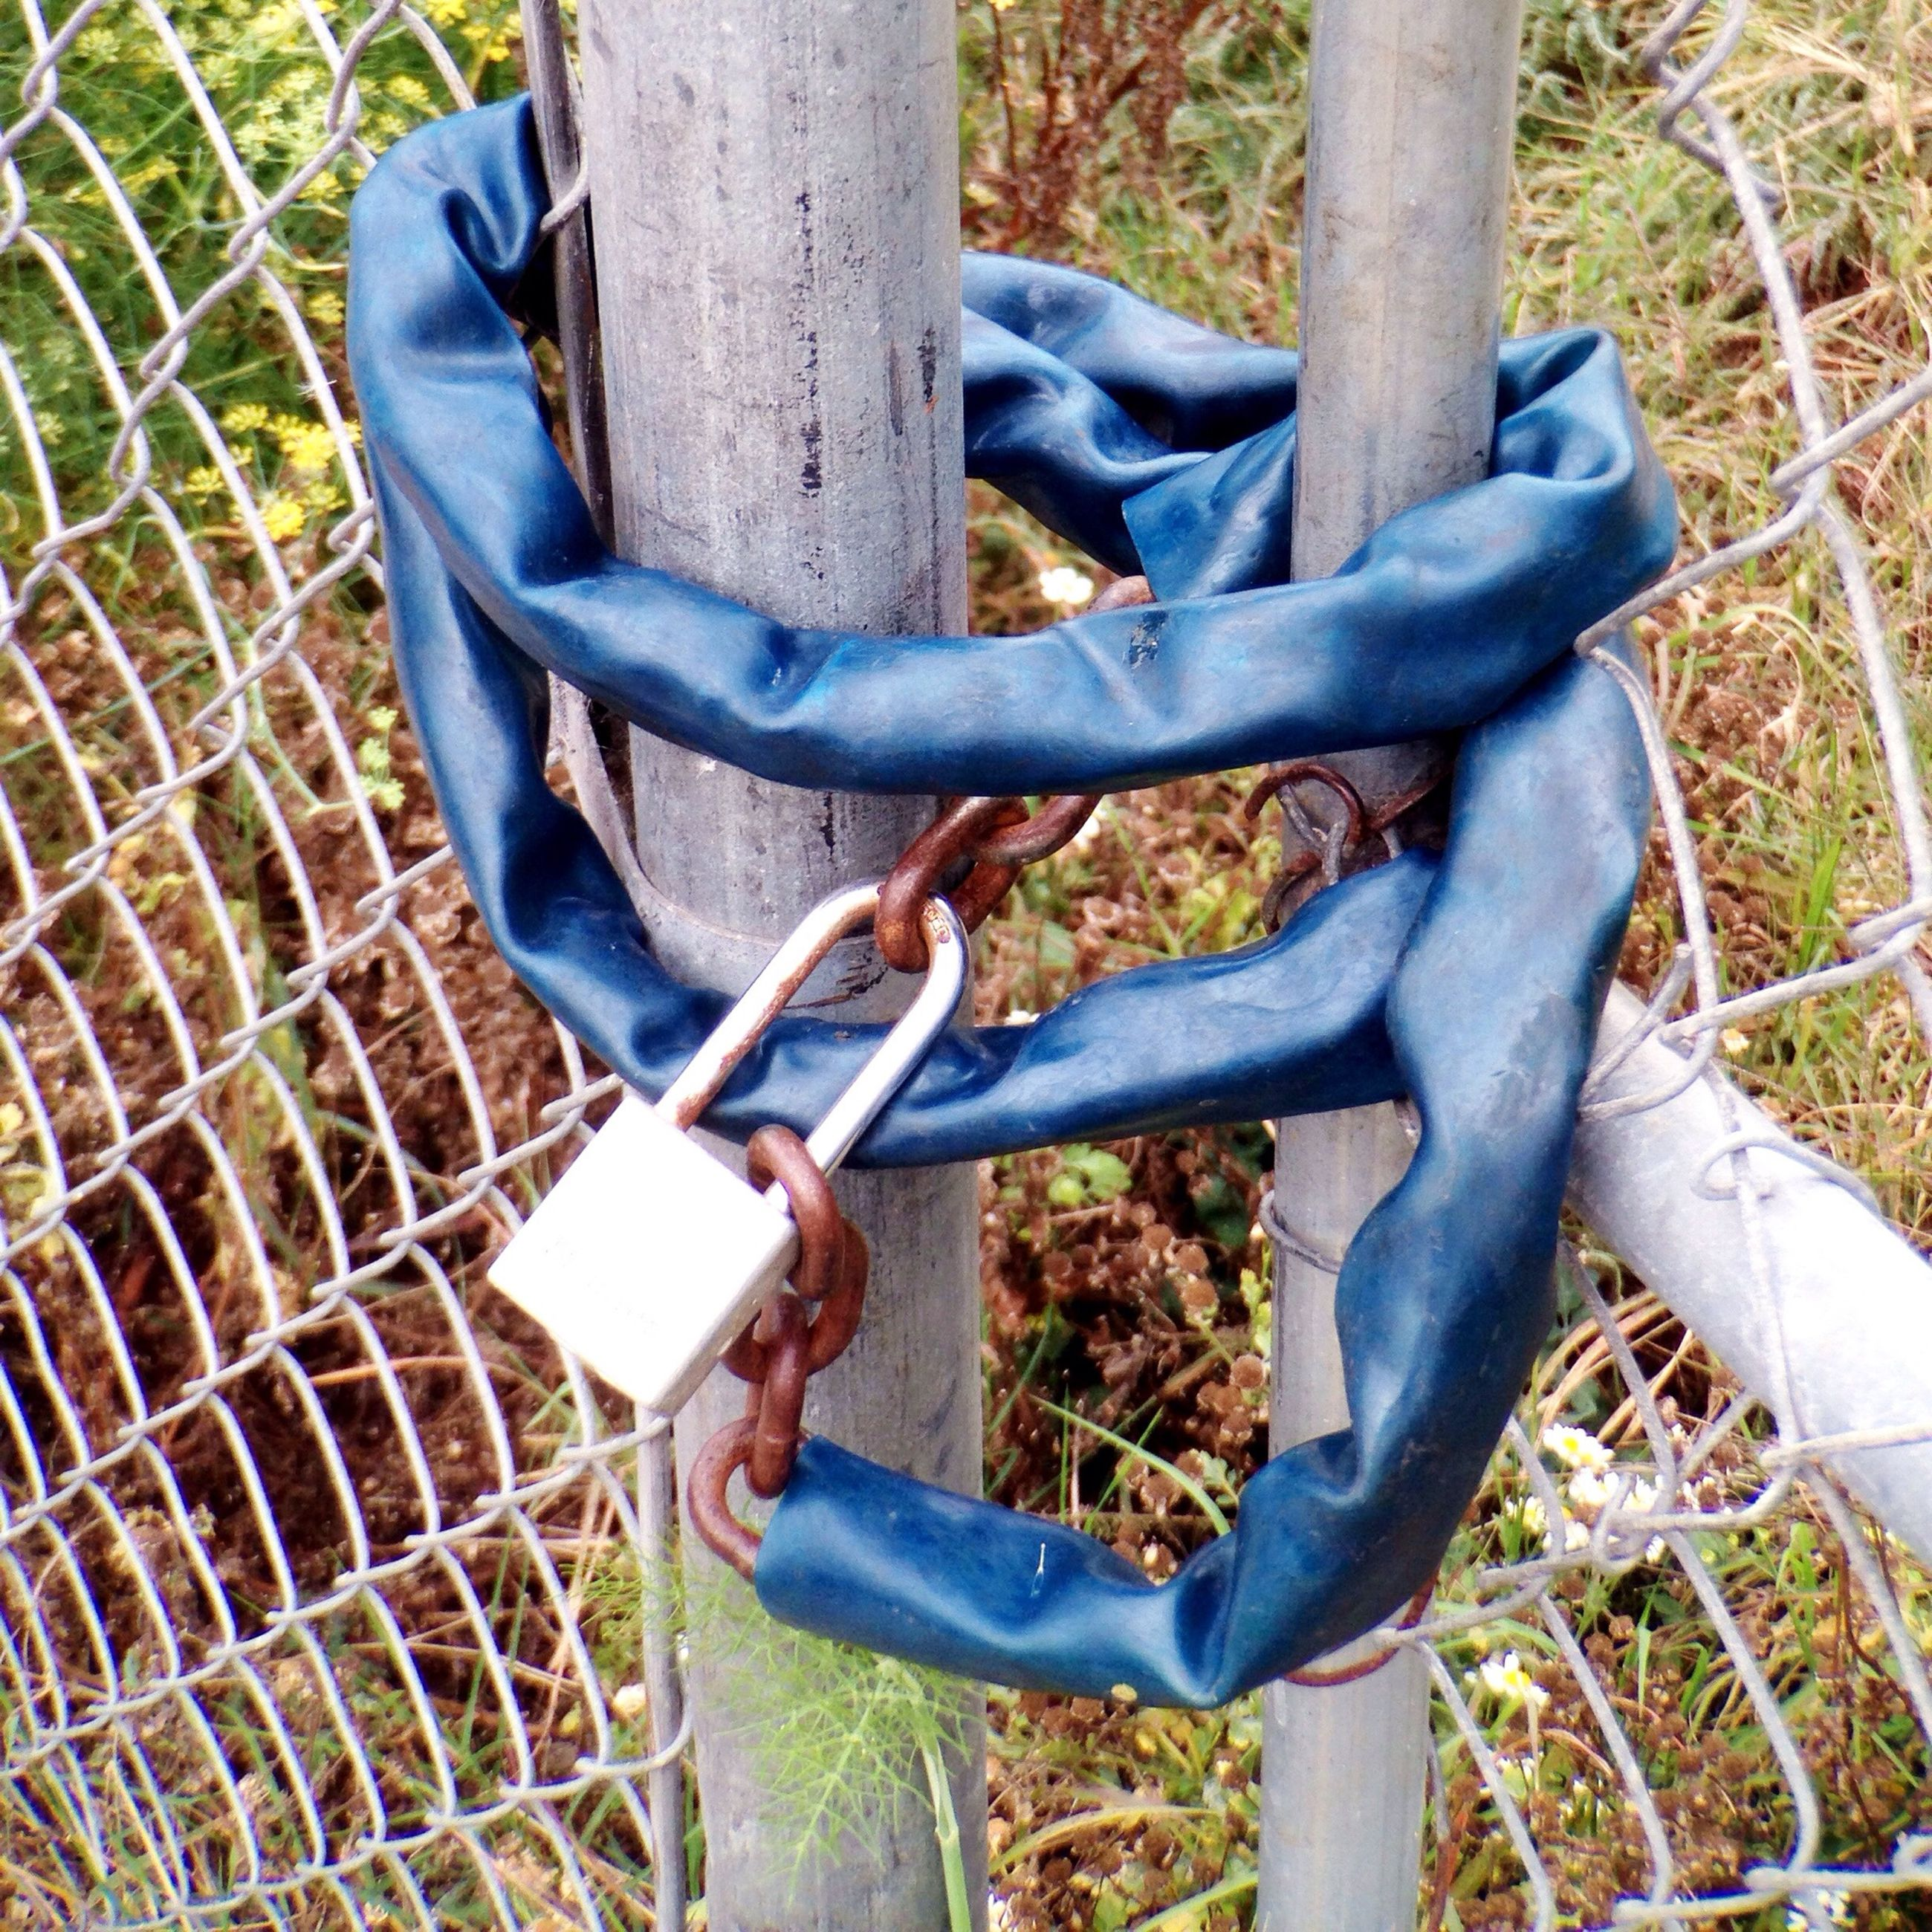 metal, fence, high angle view, field, low section, protection, grass, bicycle, childhood, chainlink fence, part of, chain, day, safety, outdoors, close-up, security, metallic